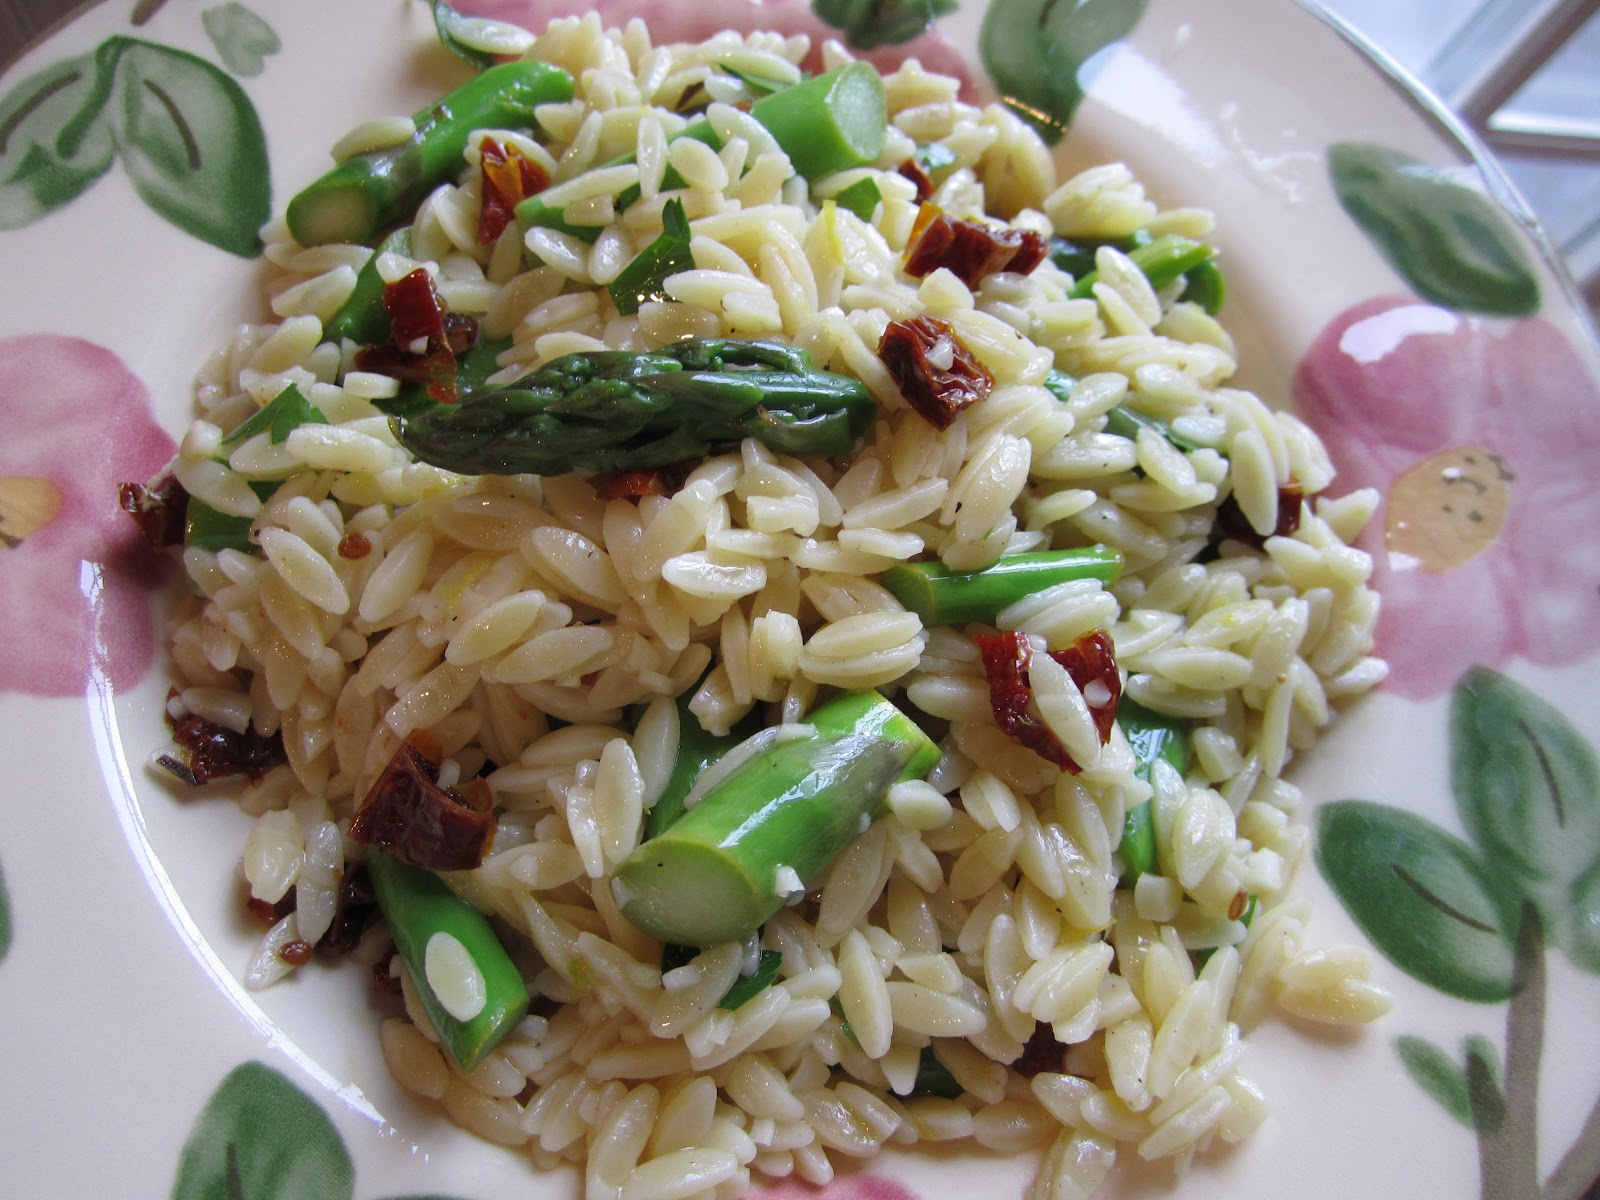 ... In Season: Lemon Orzo Salad with Asparagus and Sun-Dried Tomatoes